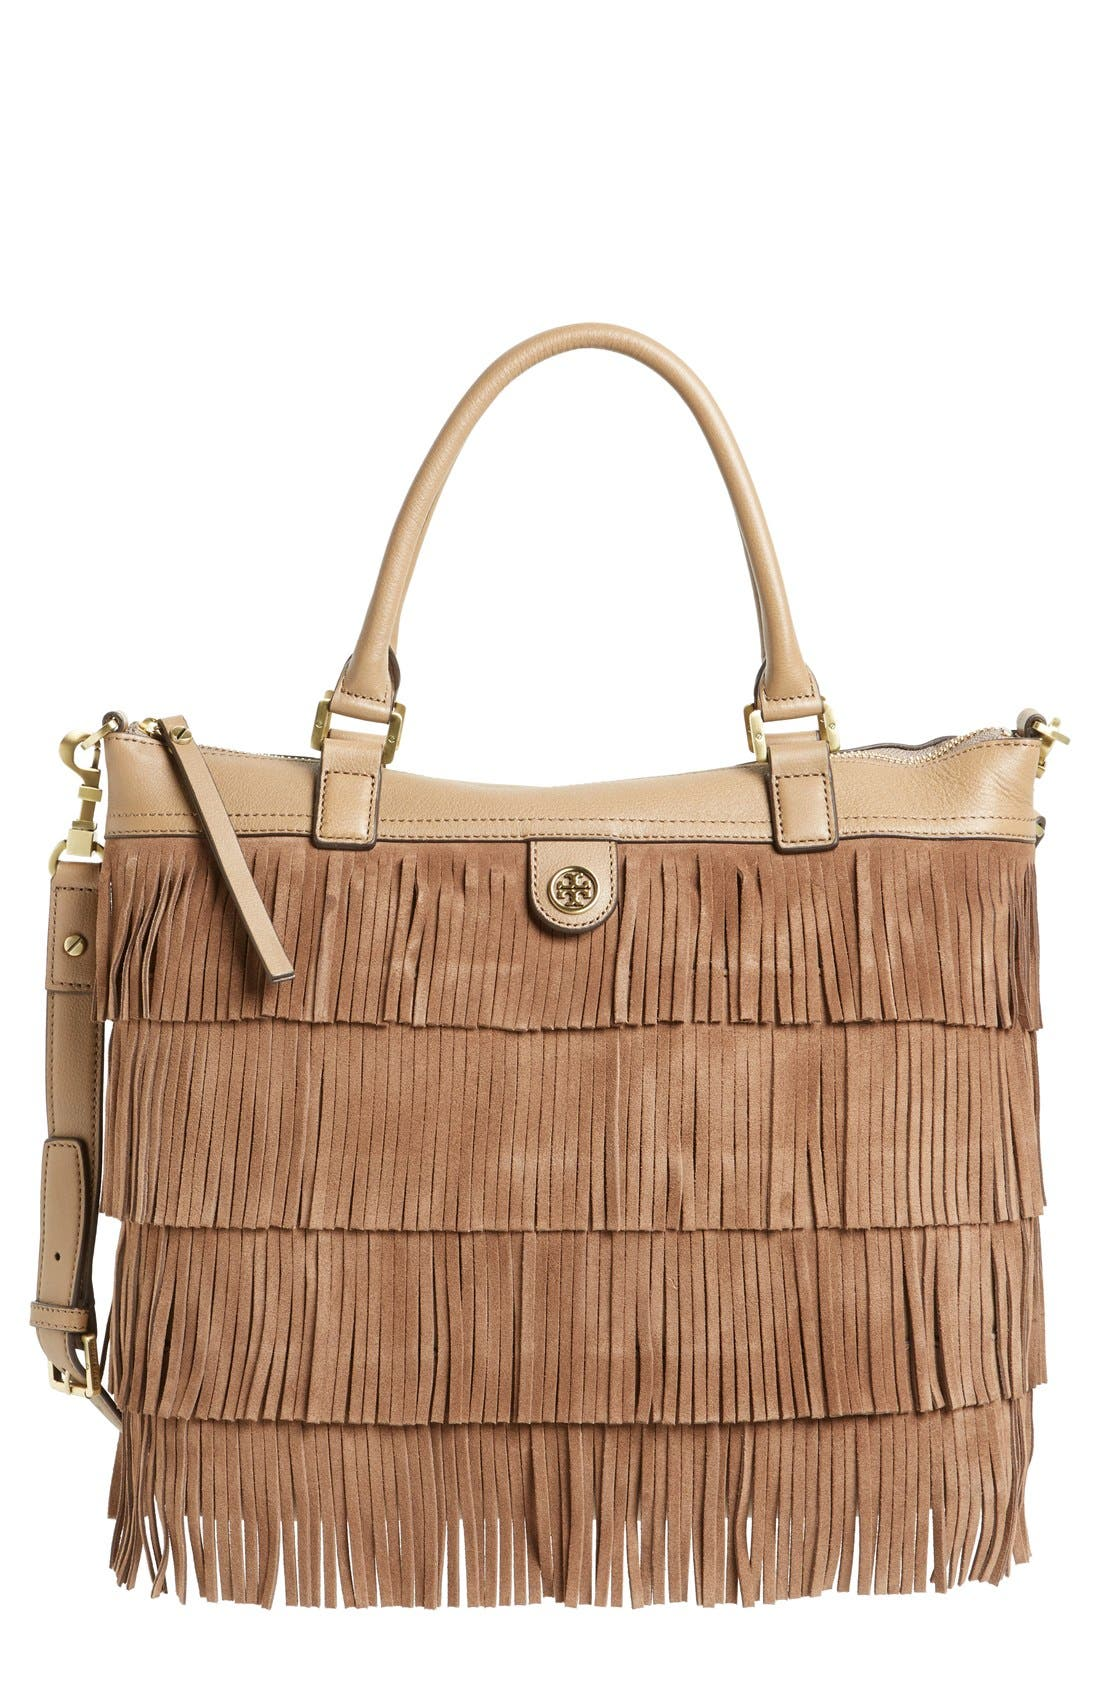 Alternate Image 1 Selected - Tory Burch Fringe Leather Tote